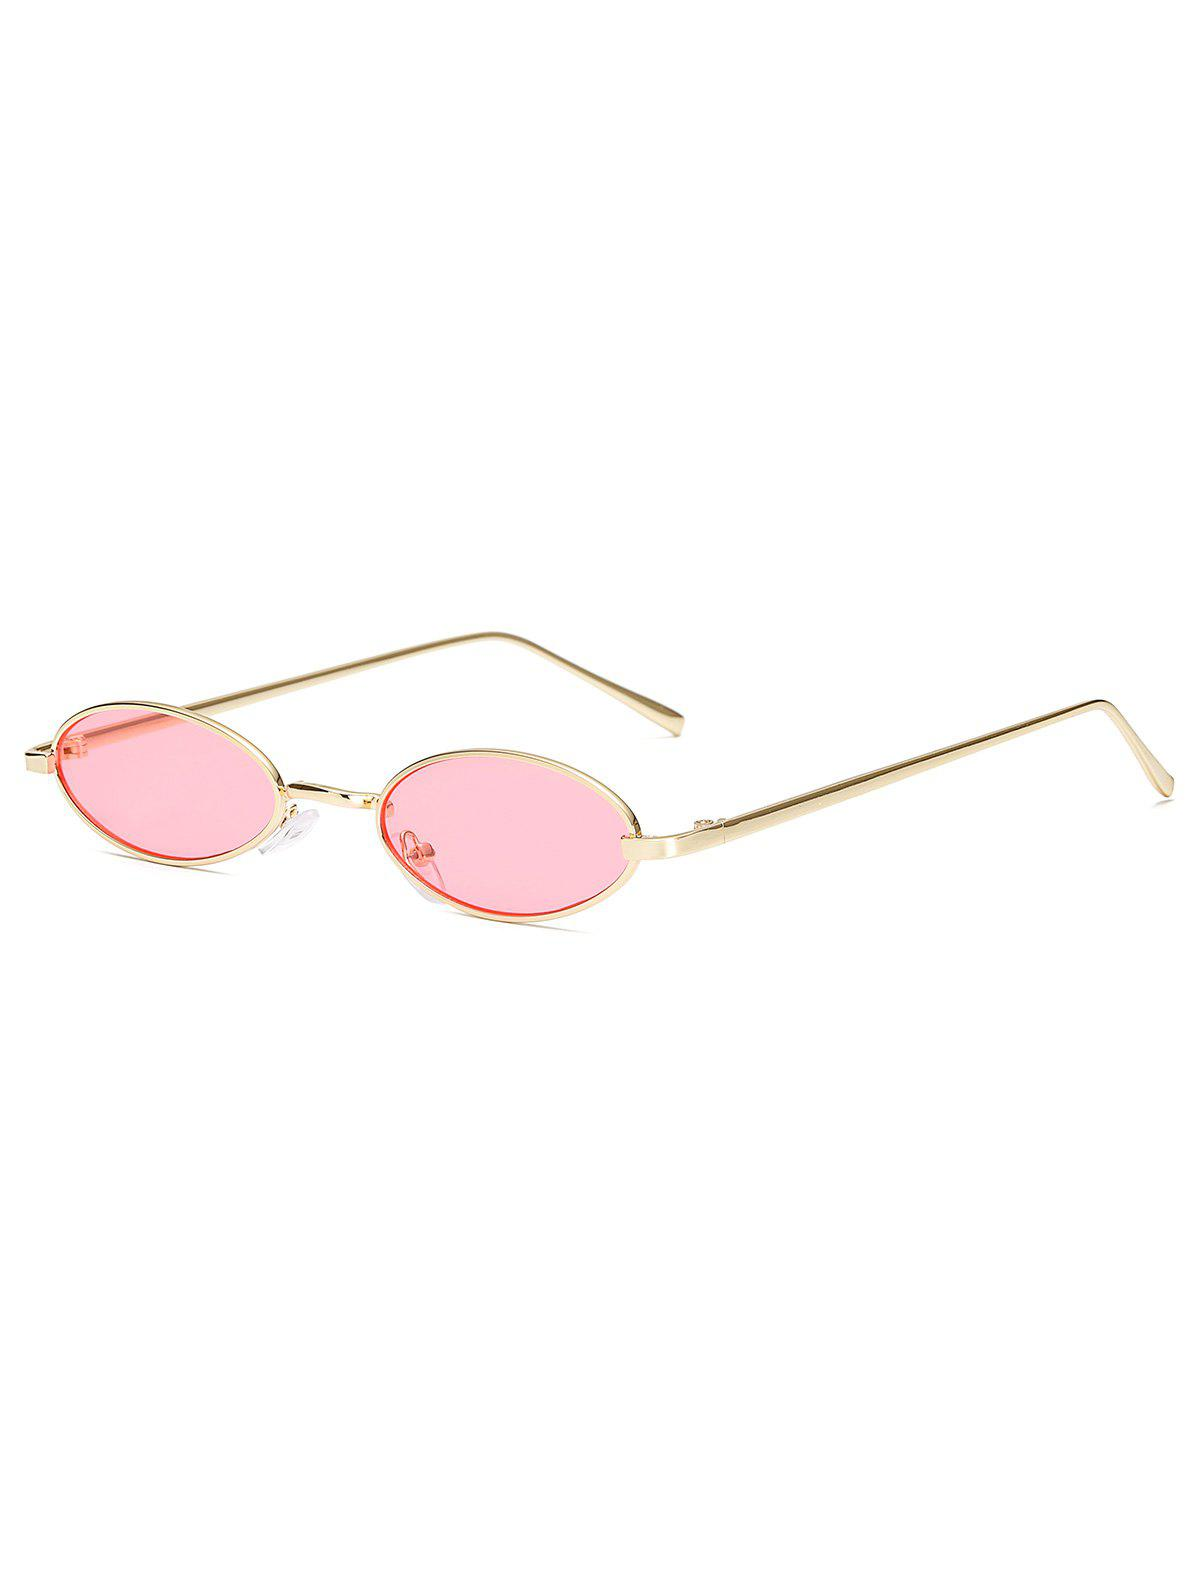 Affordable Small Vintage Oval Metal Sunglasses